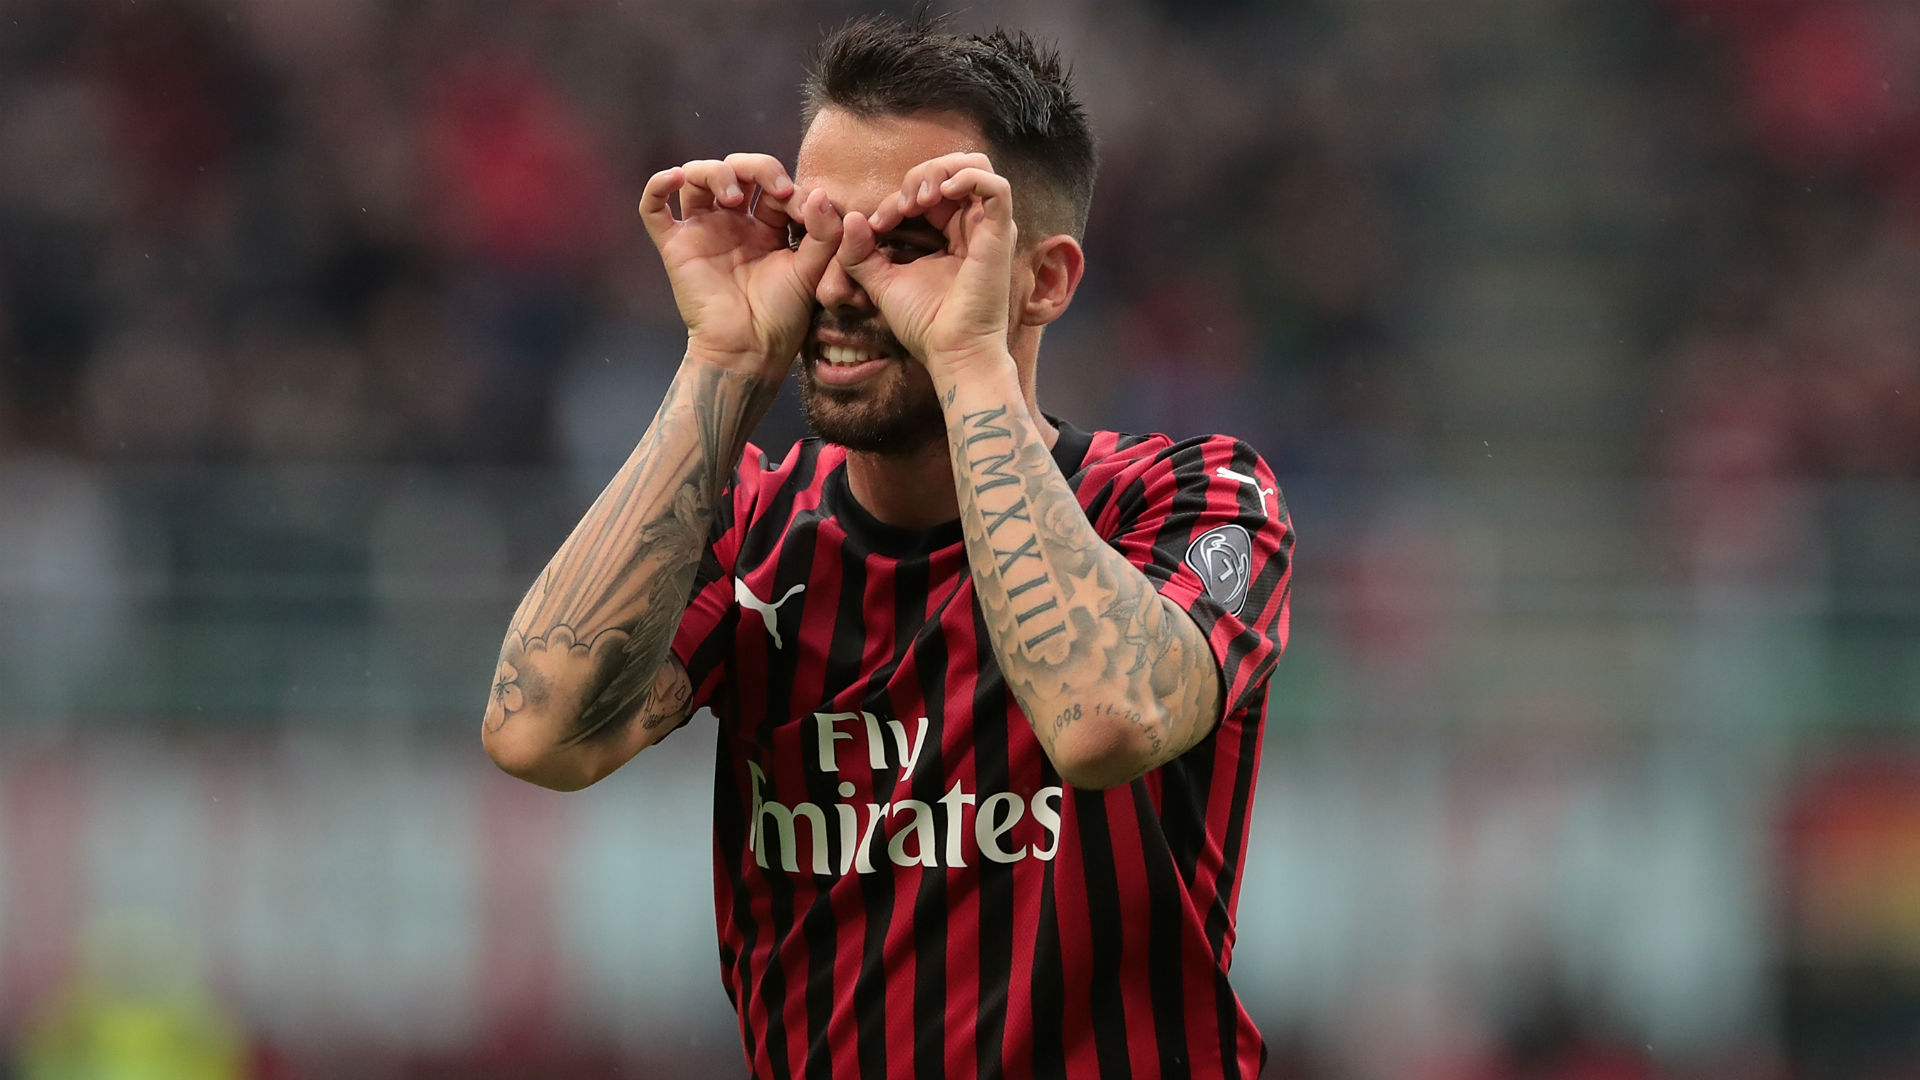 Suso leaves Milan for Sevilla